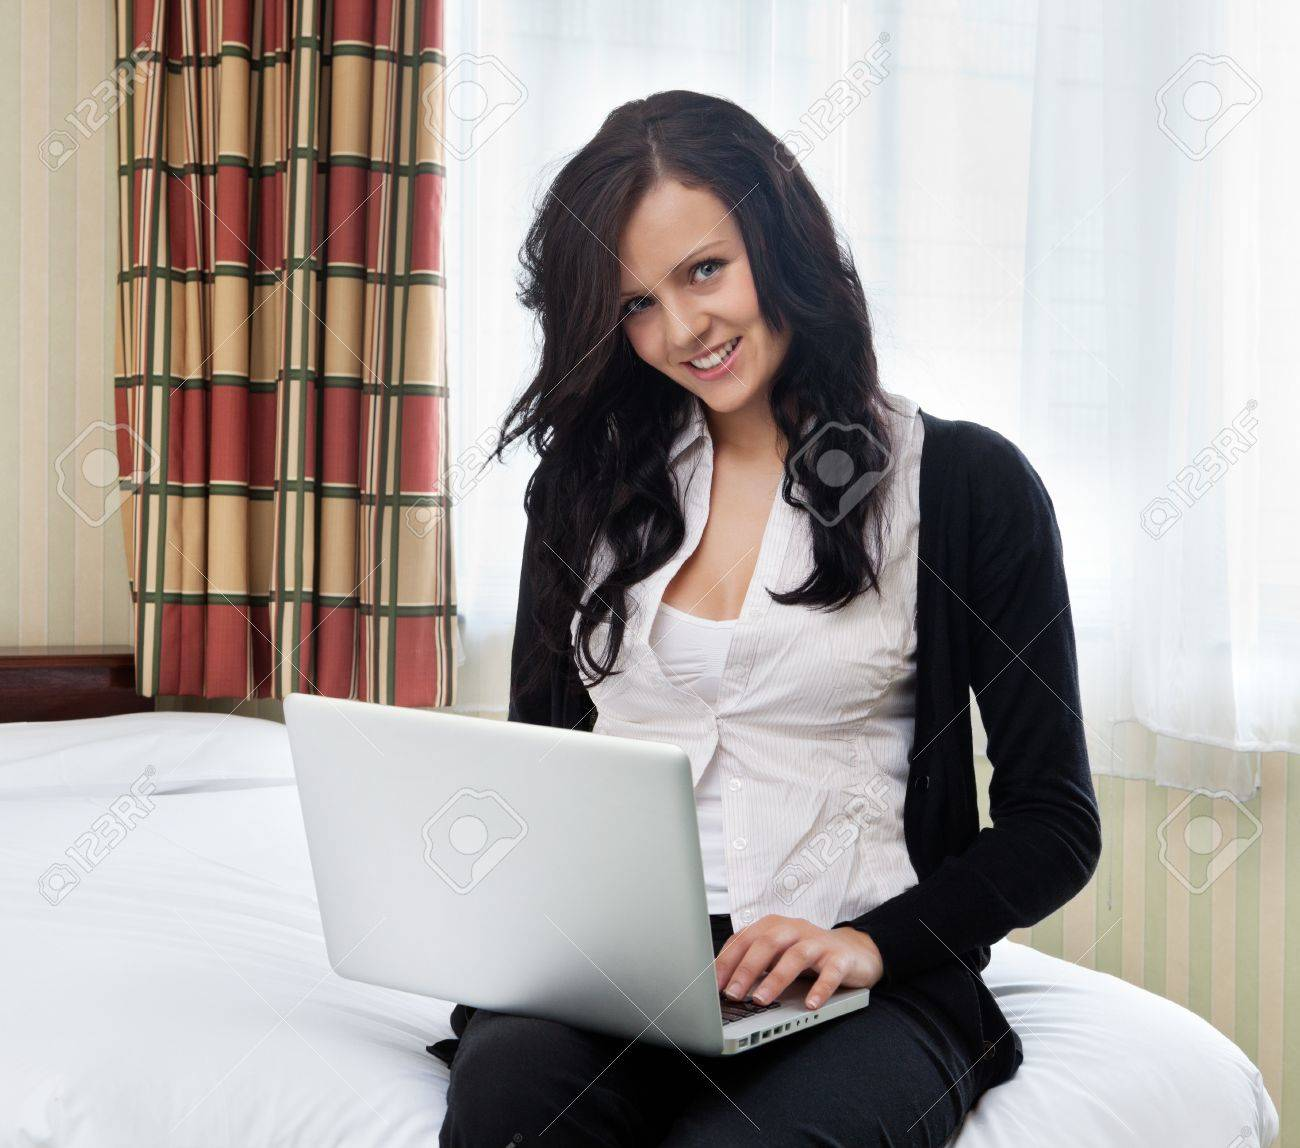 Portrait of beautiful businesswoman using laptop sitting in hotel room Stock Photo - 11538632